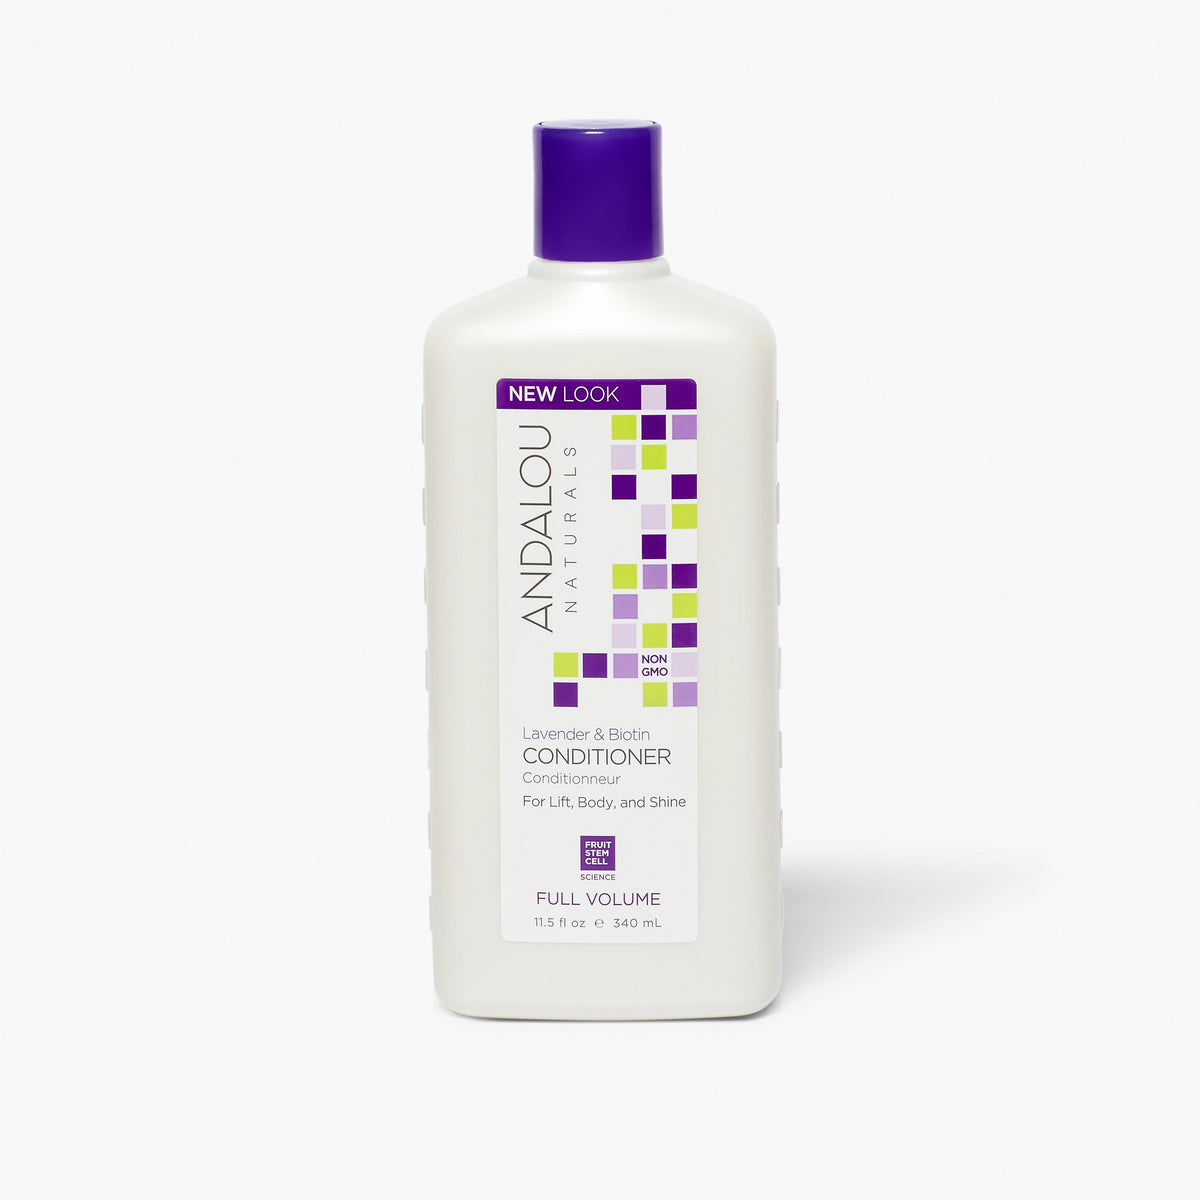 Lavender & Biotin Full Volume Conditioner - Andalou Naturals US